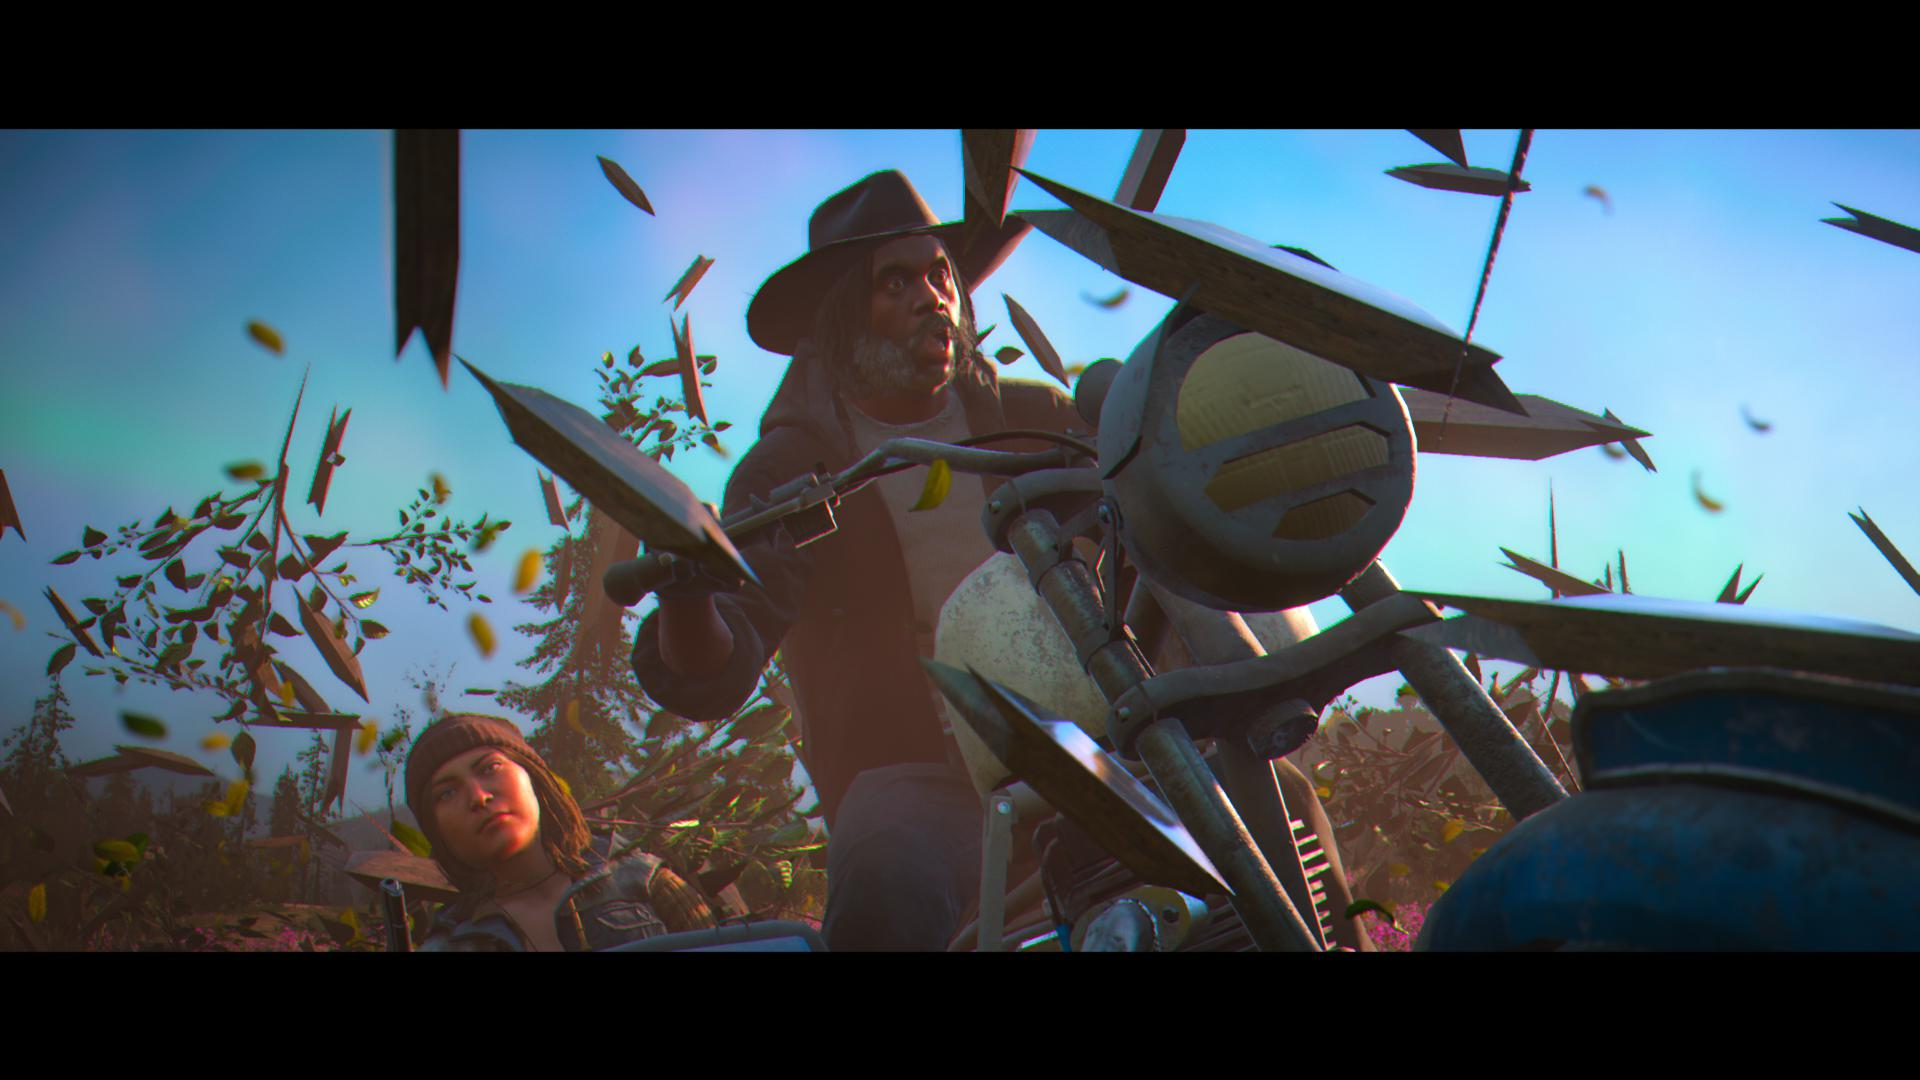 It's the player bursting through a fence on a motorbike